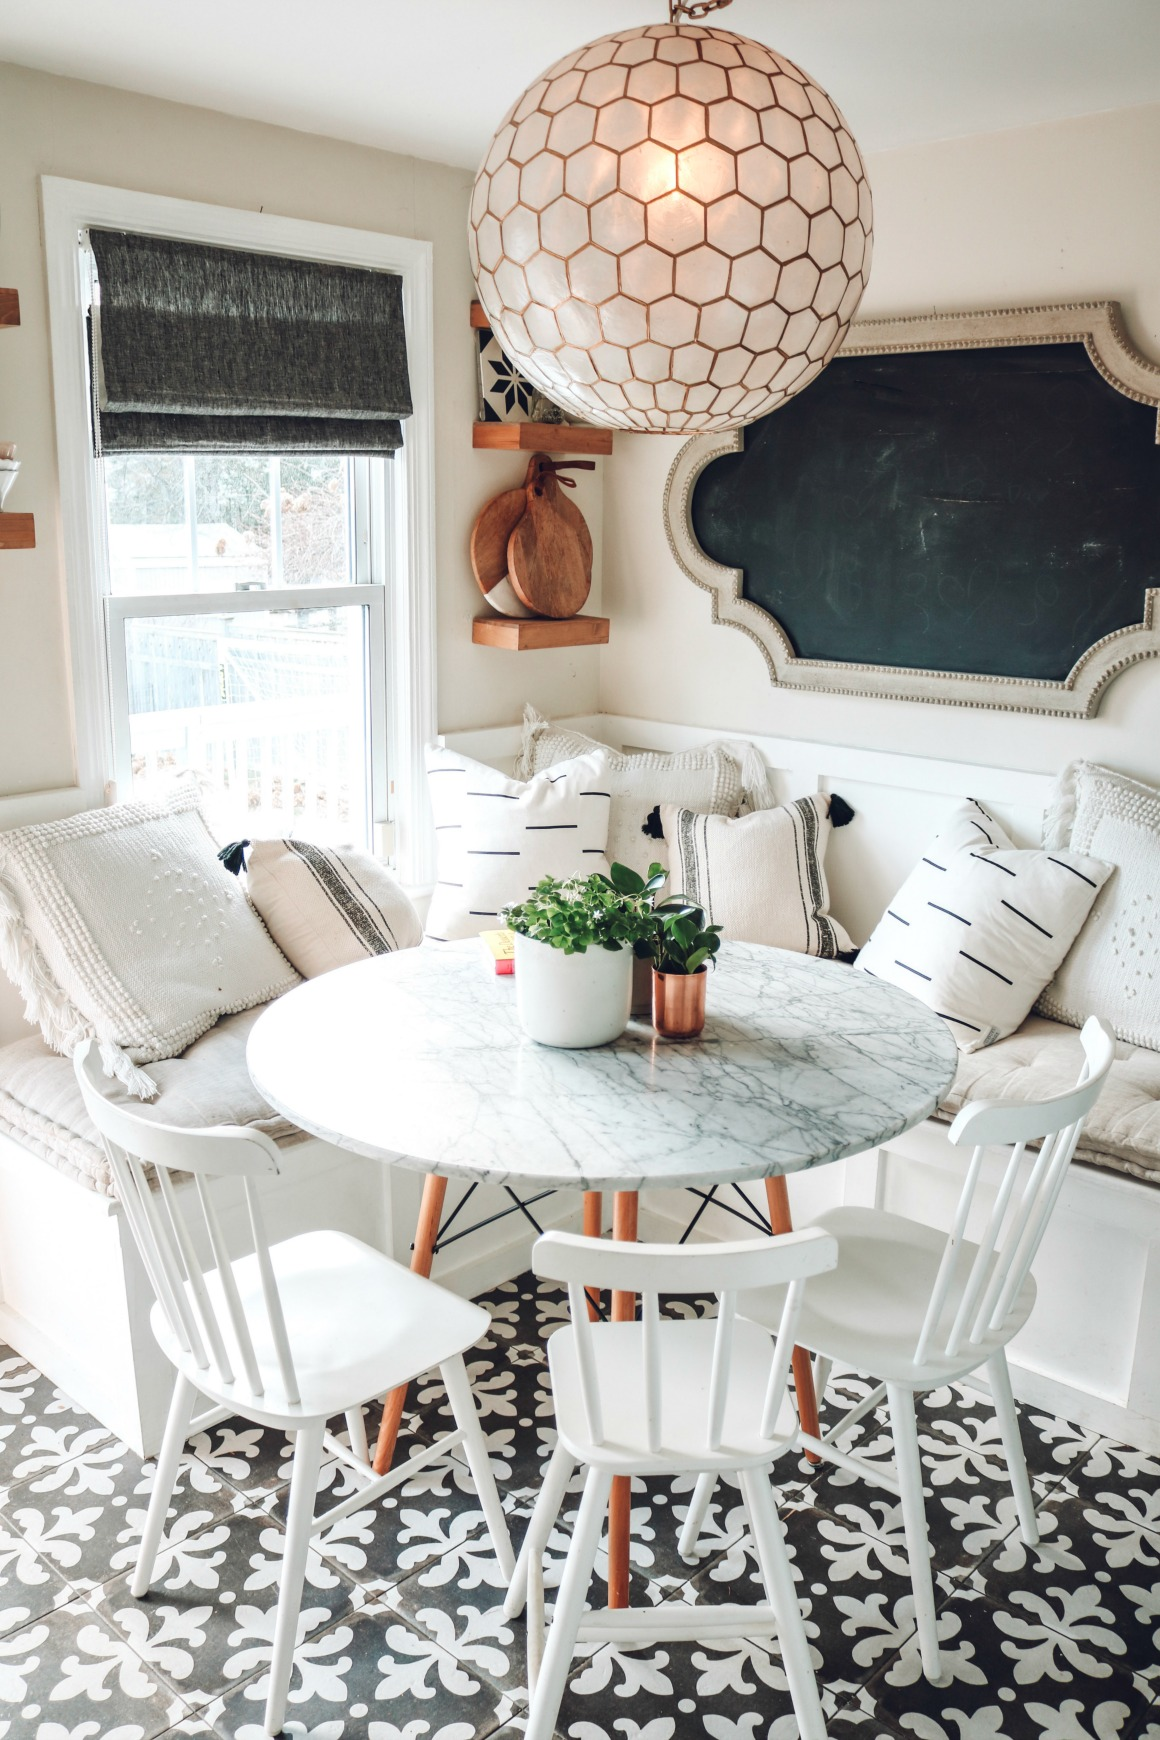 7 ways to Use What you Have for Spring!